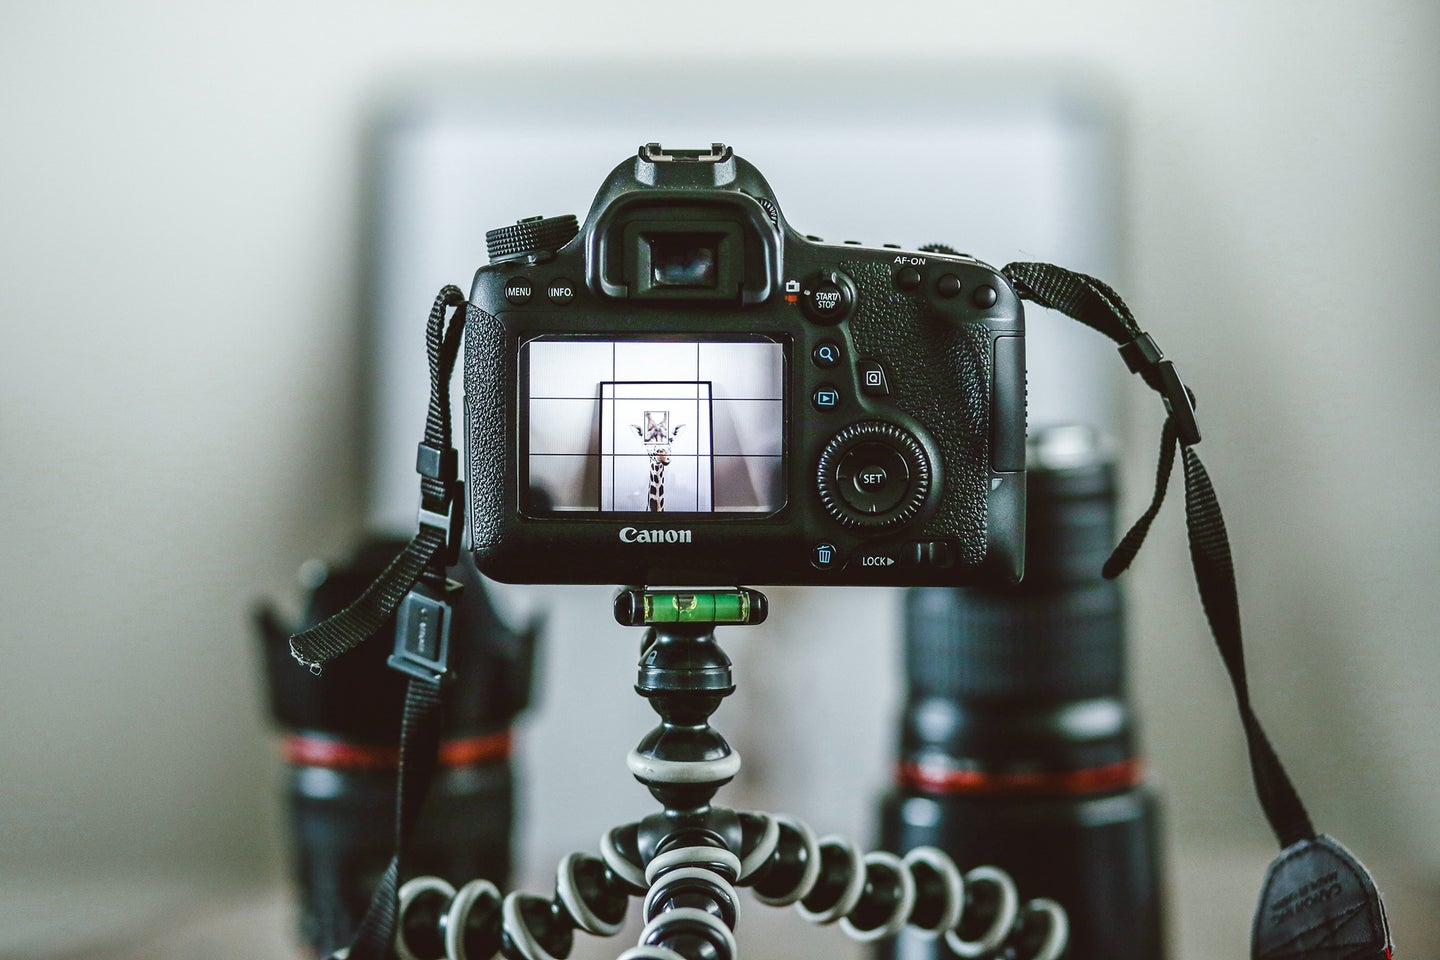 canon camera on a small tripod with lenses in the background